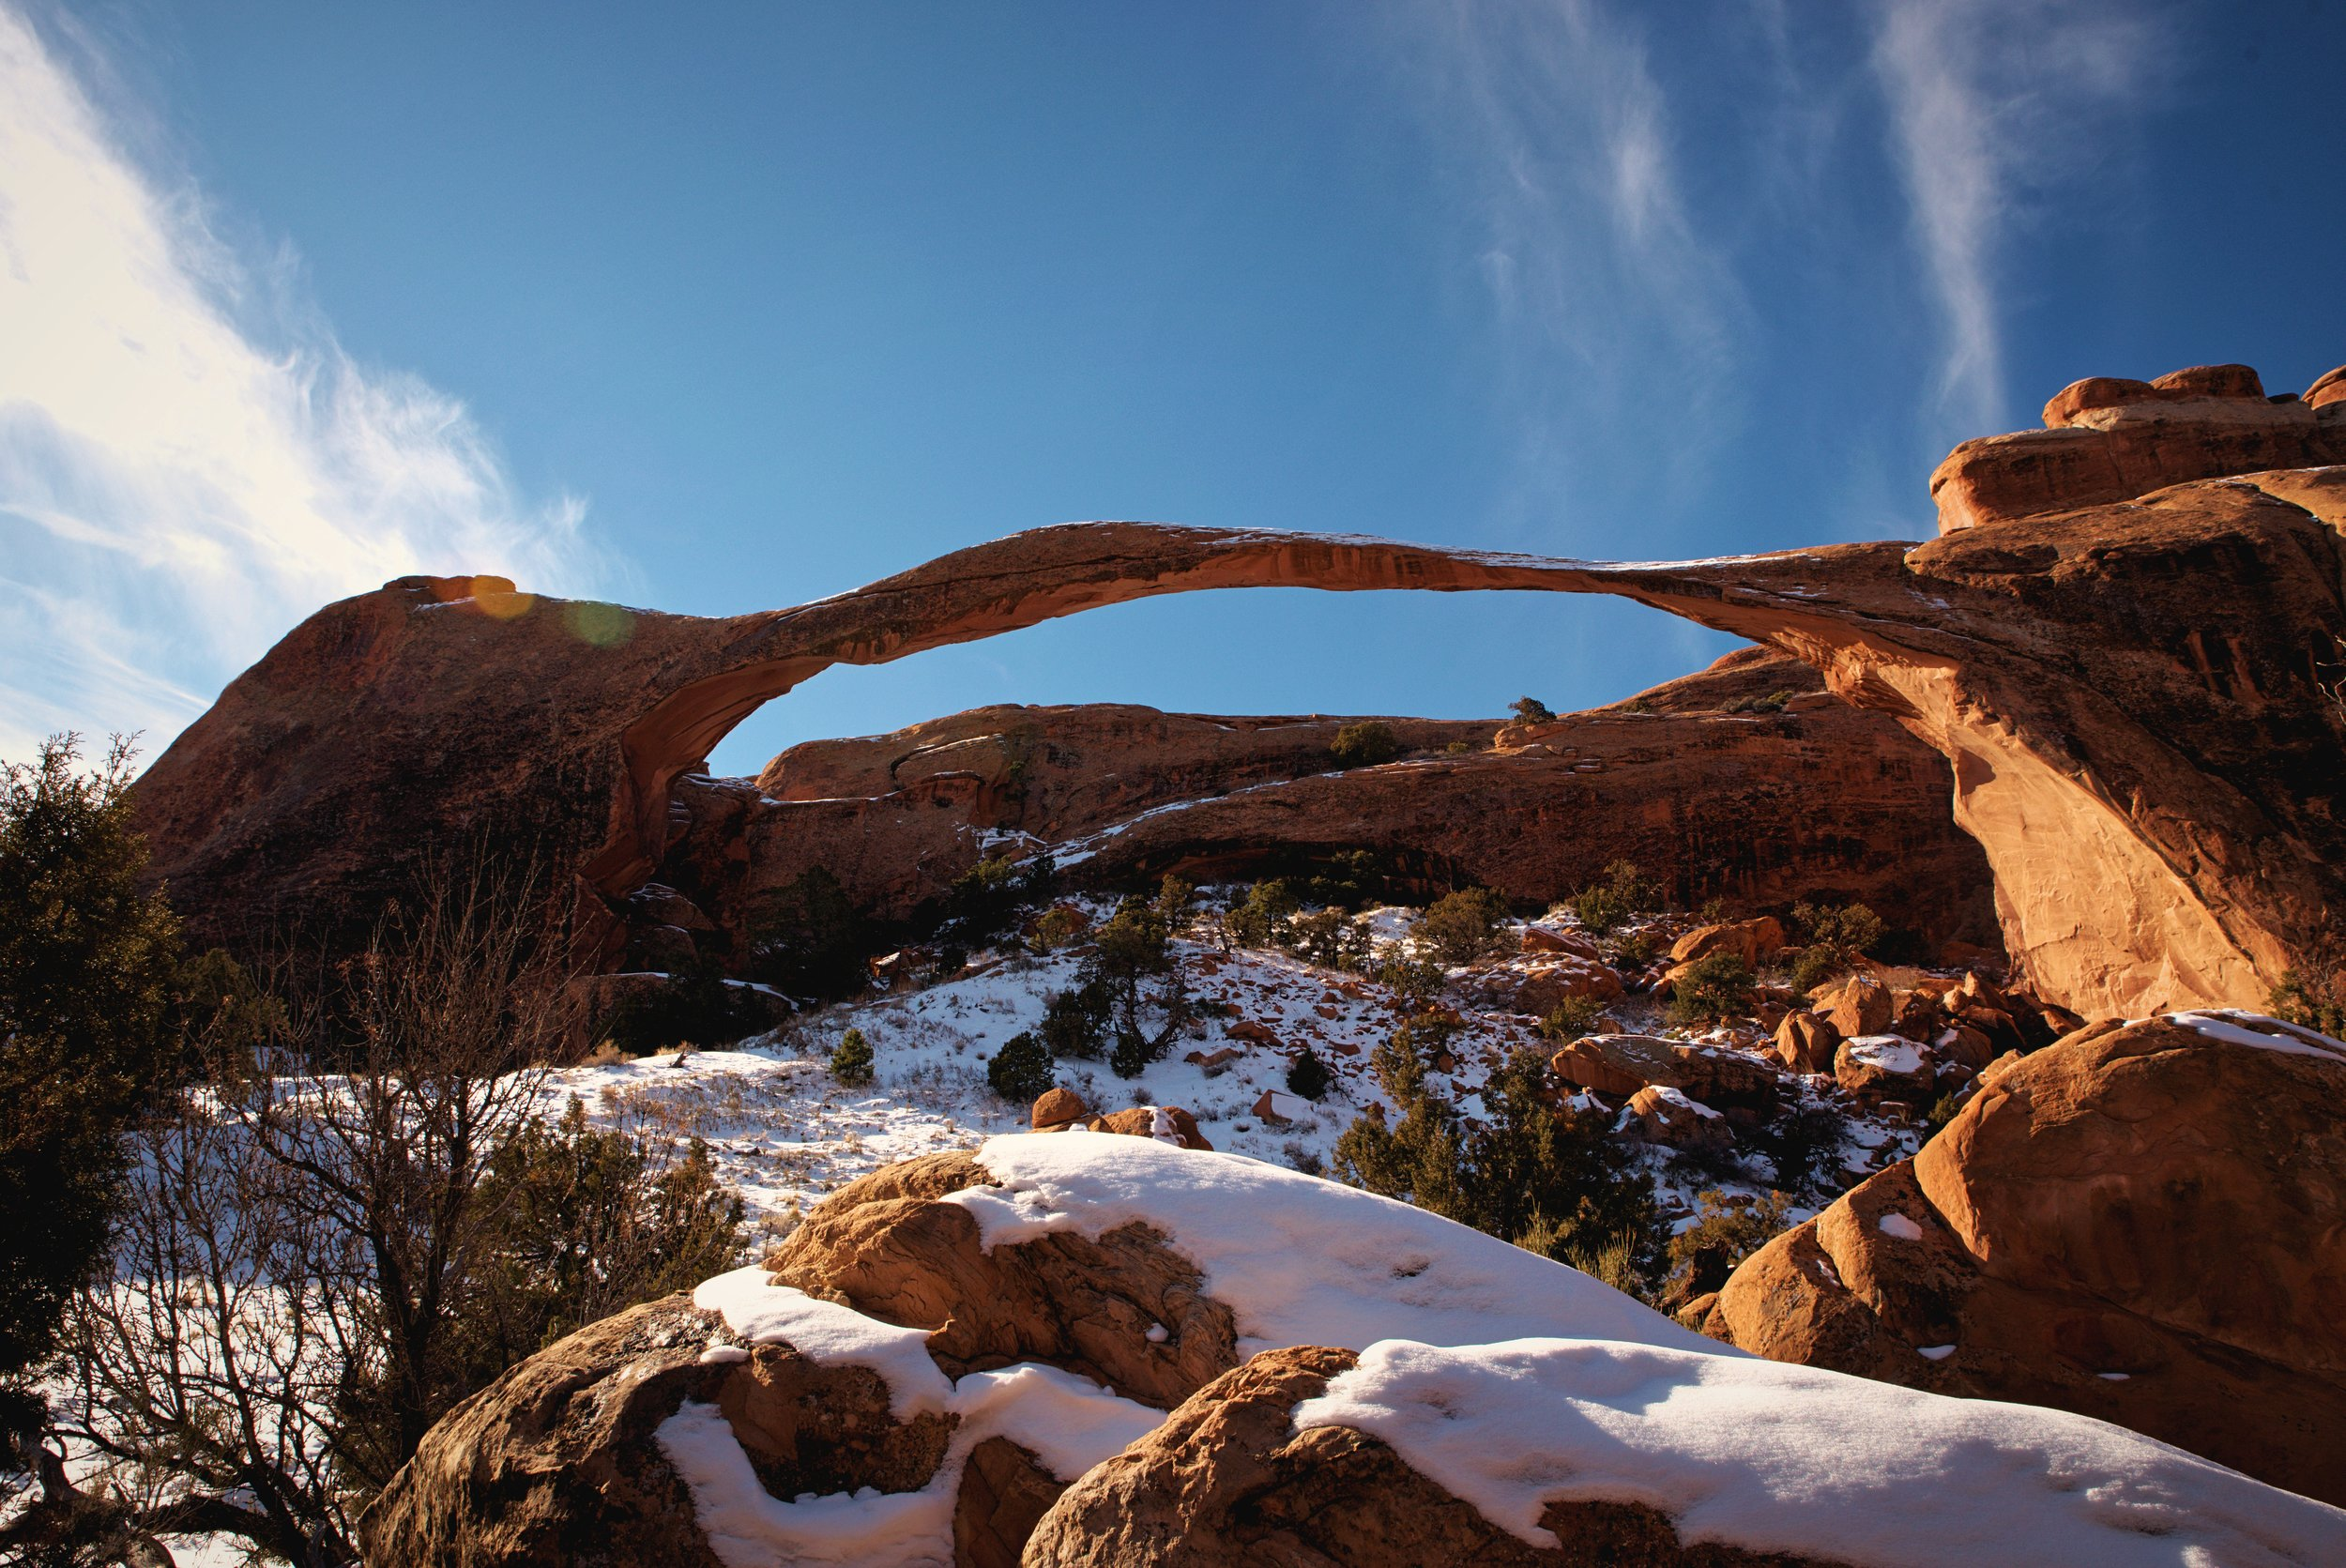 Landscape Arch almost defies gravity.